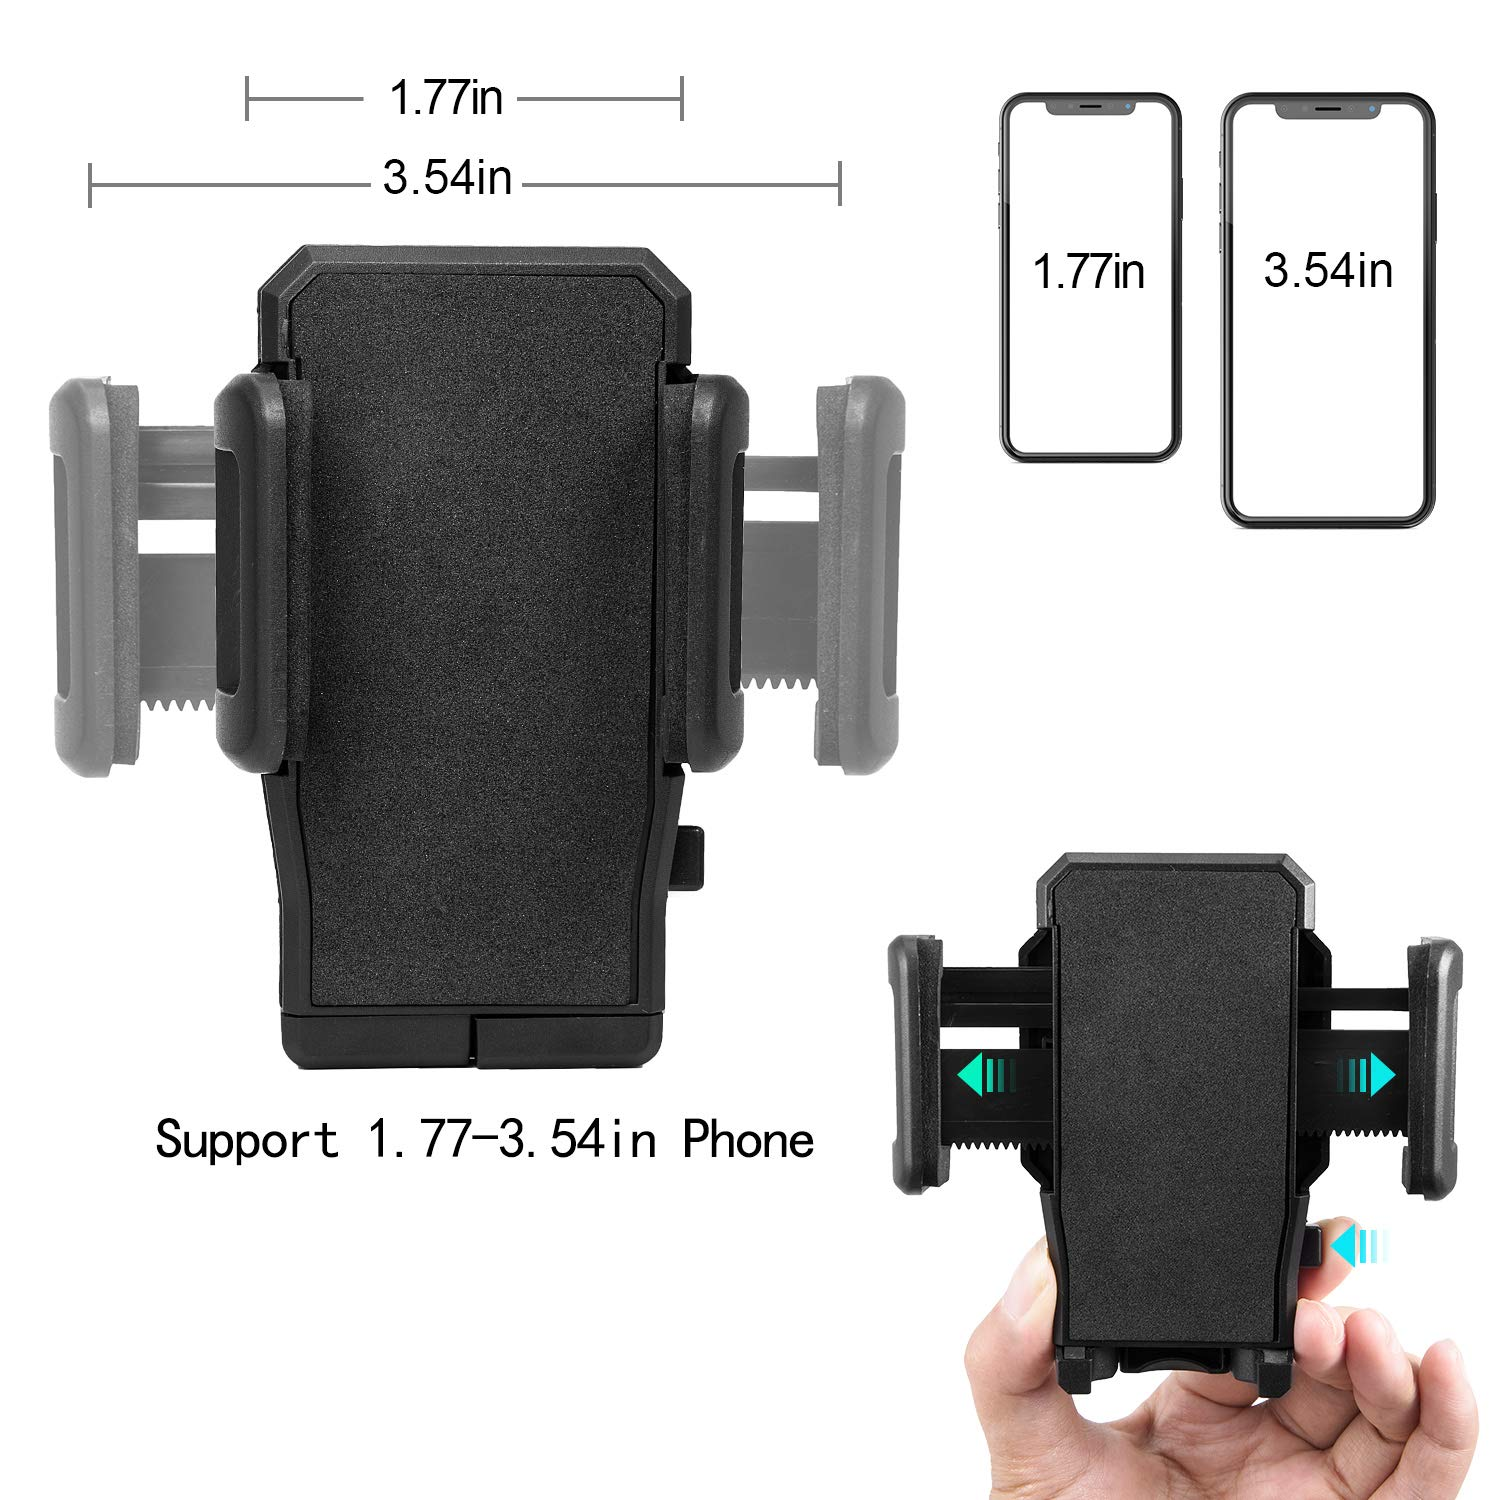 Universal Cup Phone Car Holder Mount with Adjustable Long Arm 360/° Rotatable Cradle for iPhone Xr Xs Max 8 7 Plus Galaxy S10 S9 S8 Note 9 Strong Locking Mechanism MODESLAB Car Cup Cell Phone Holder